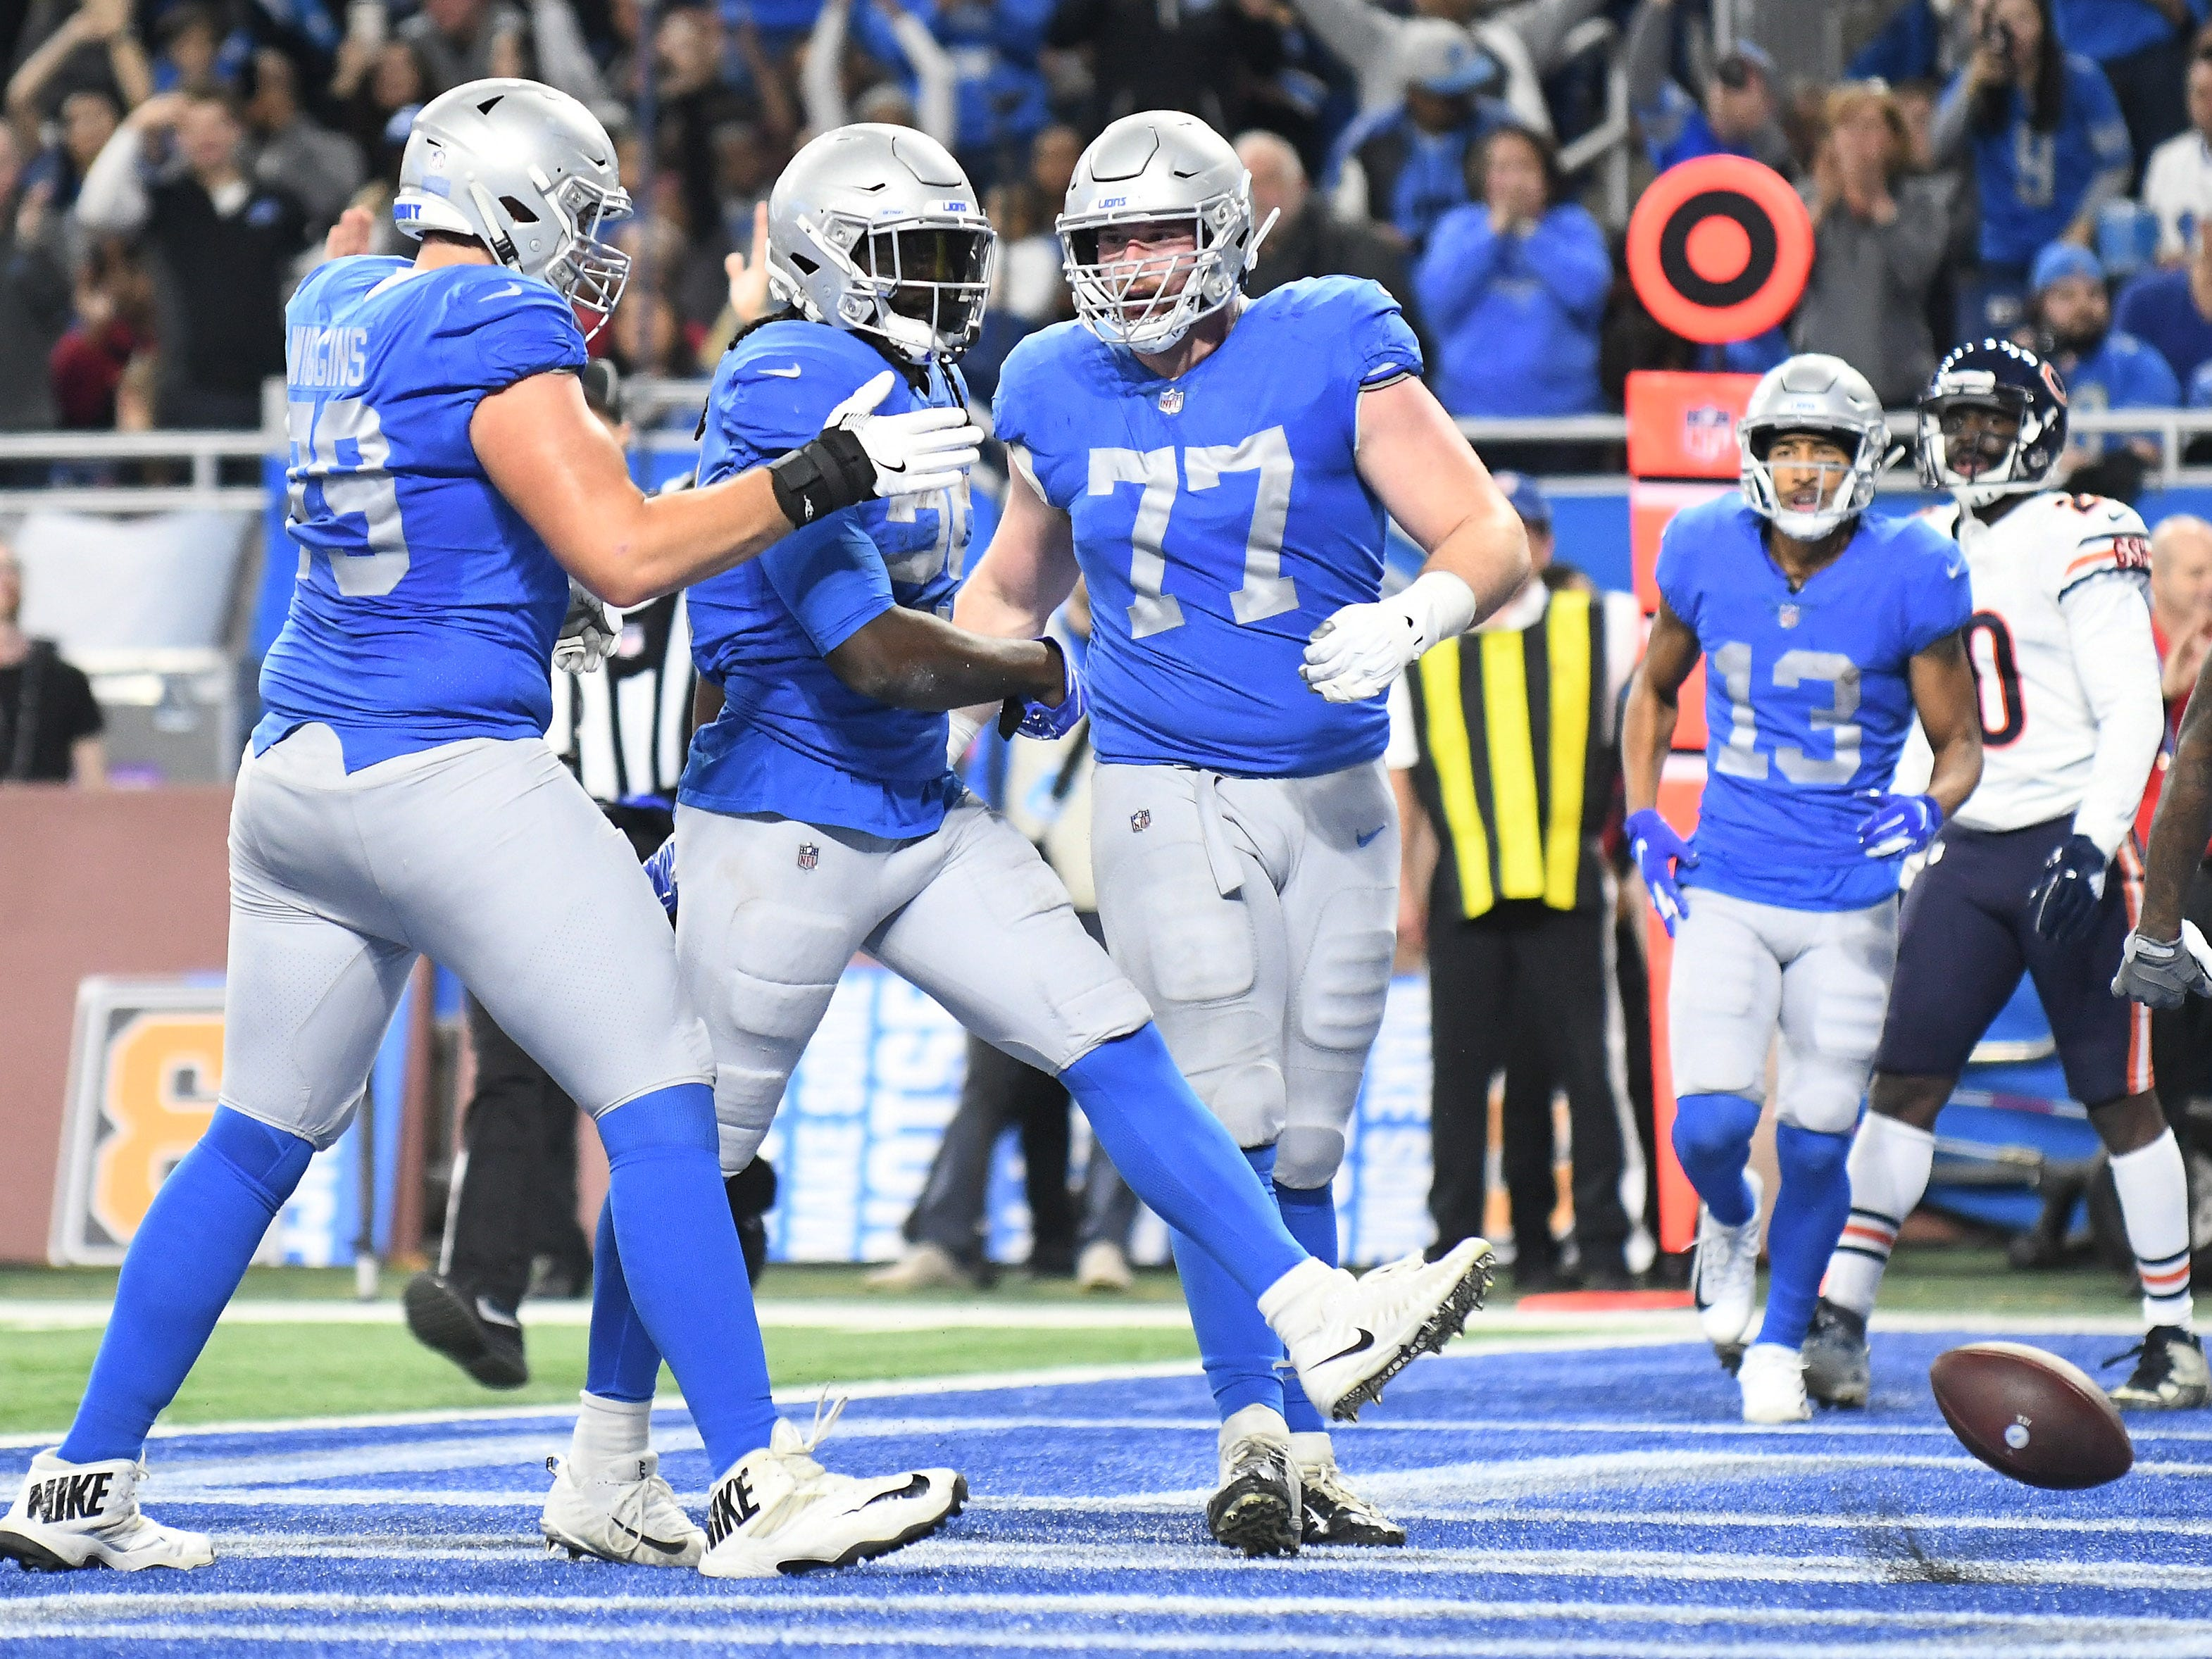 Lions' LaGarrette Blount, center, celebrates his second half touchdown with Kenny Wiggins, left, and Frank Ragnow (77) In the second quarter. Detroit Lions vs Chicago Bears on Thanksgiving Day at Ford Field in Detroit on Nov. 22, 2018. (Robin Buckson / Detroit News)